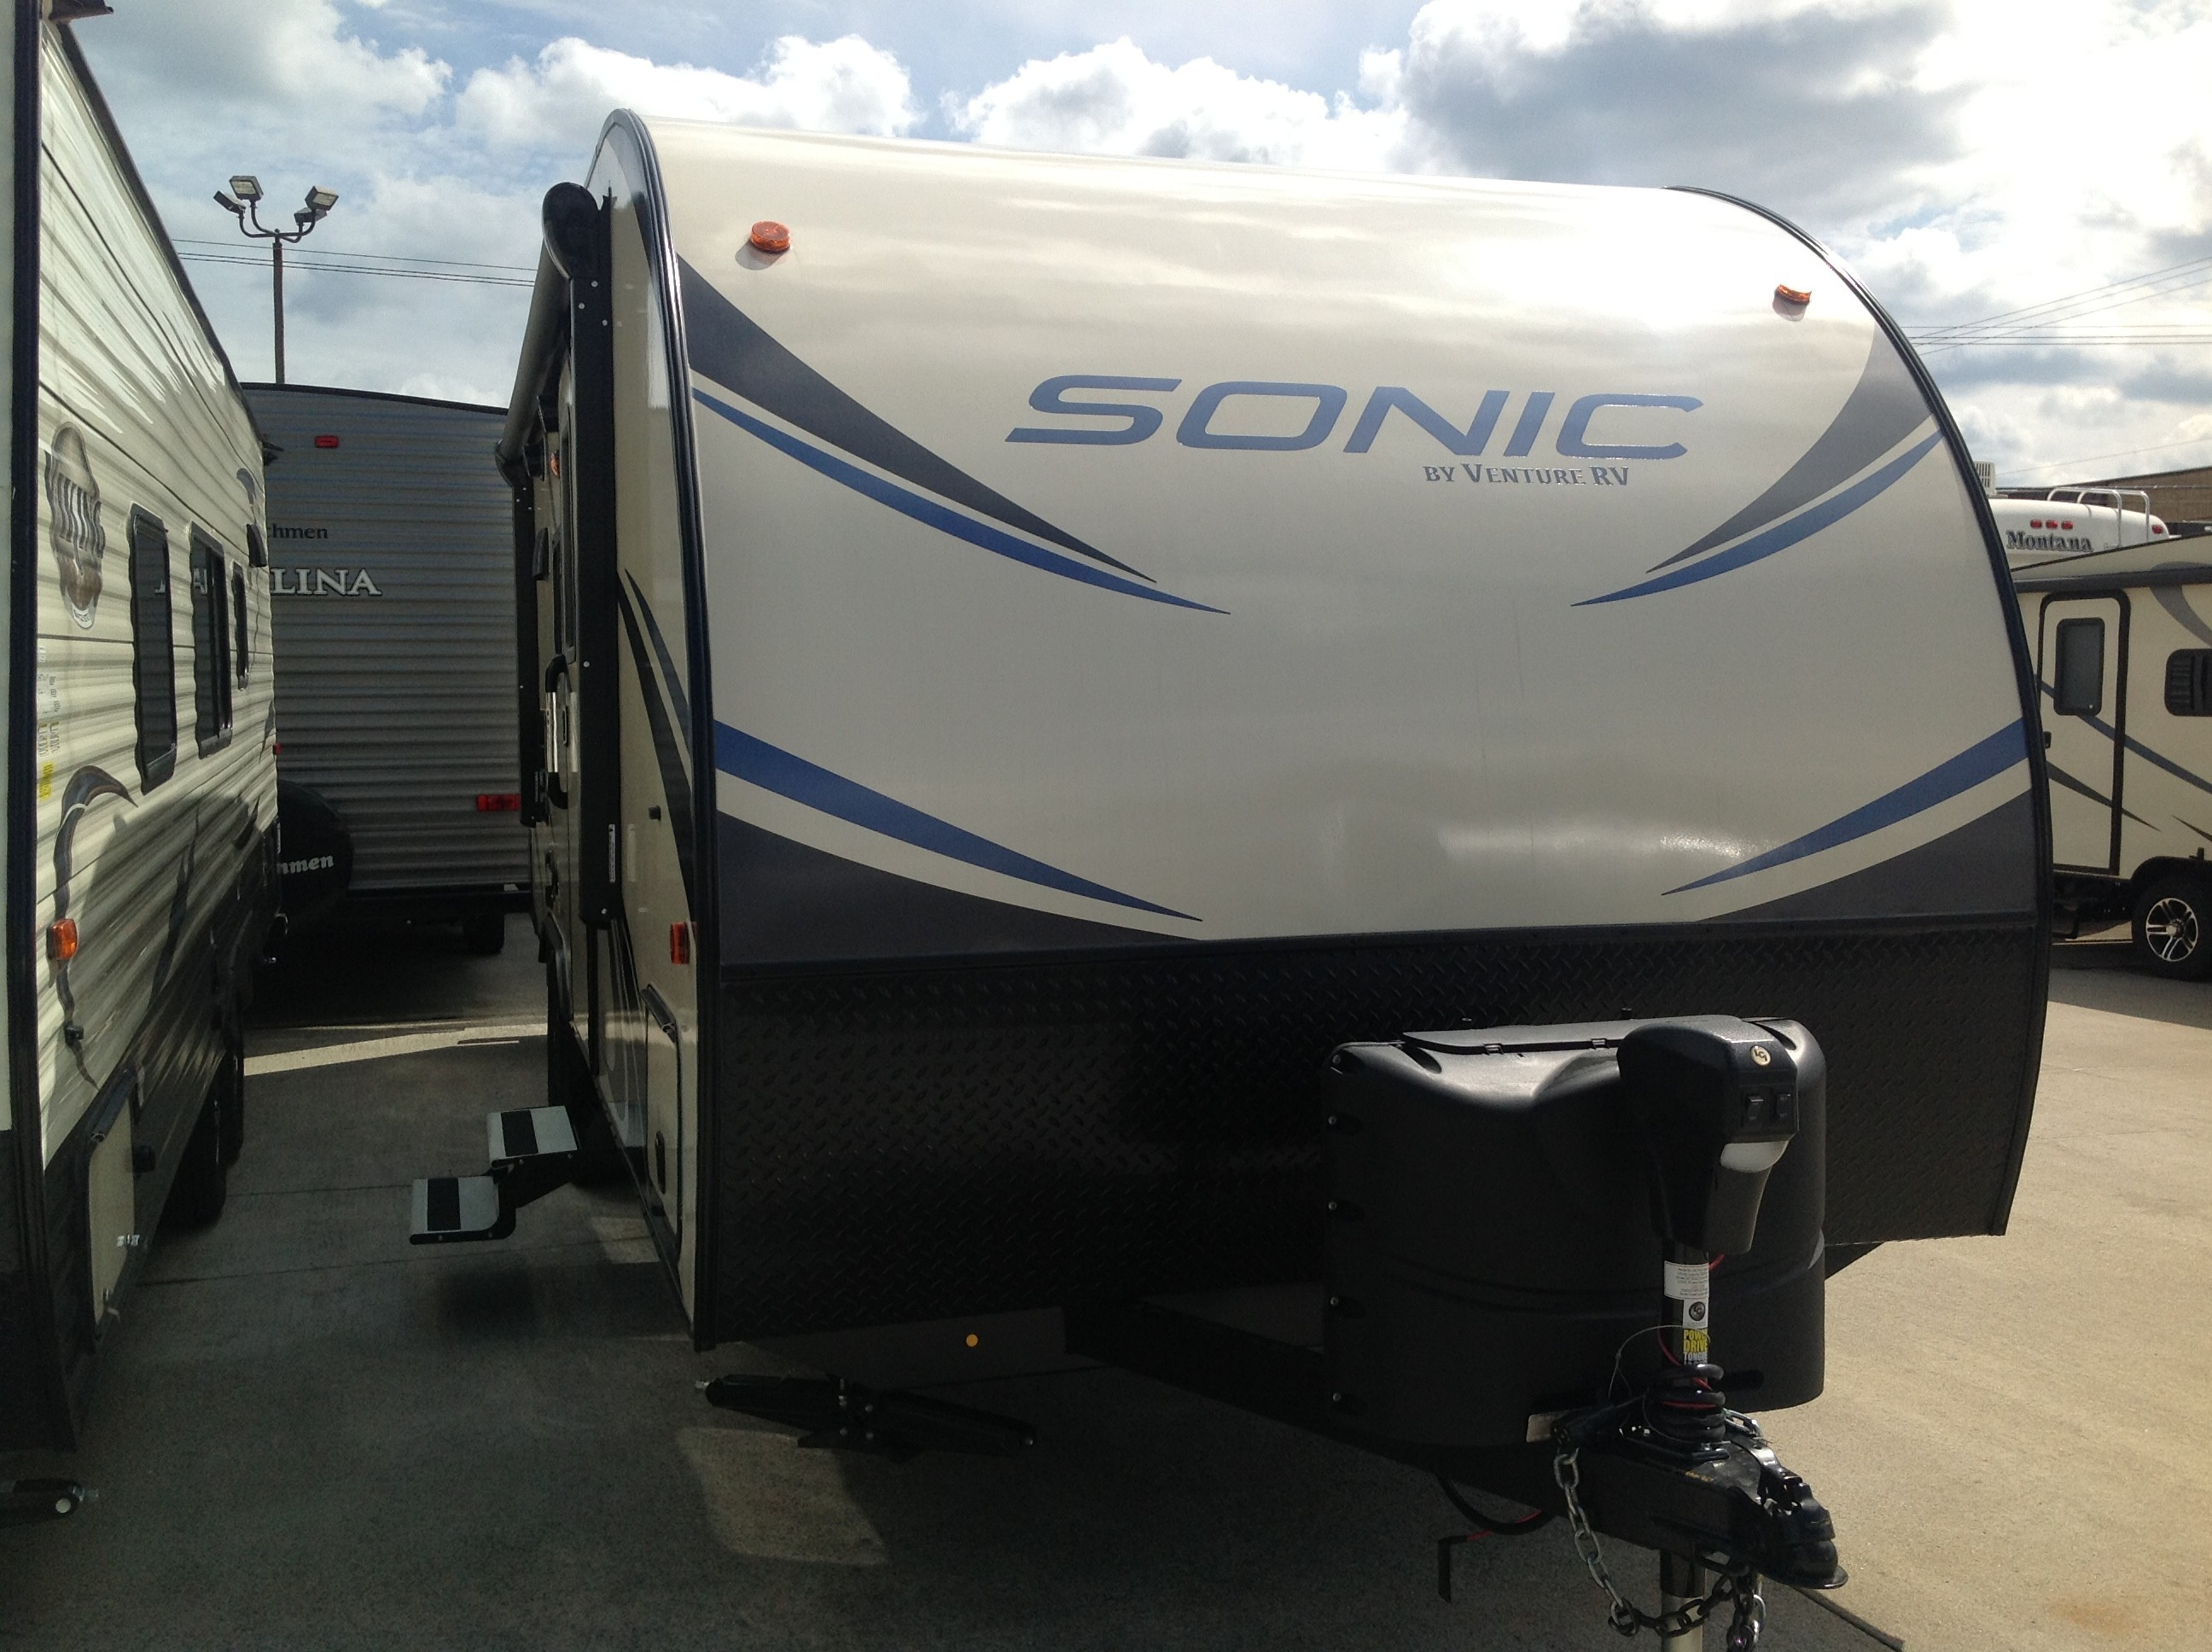 New, 2019, Venture, Sonic 220 VBH  by Venture-RV, Travel Trailers